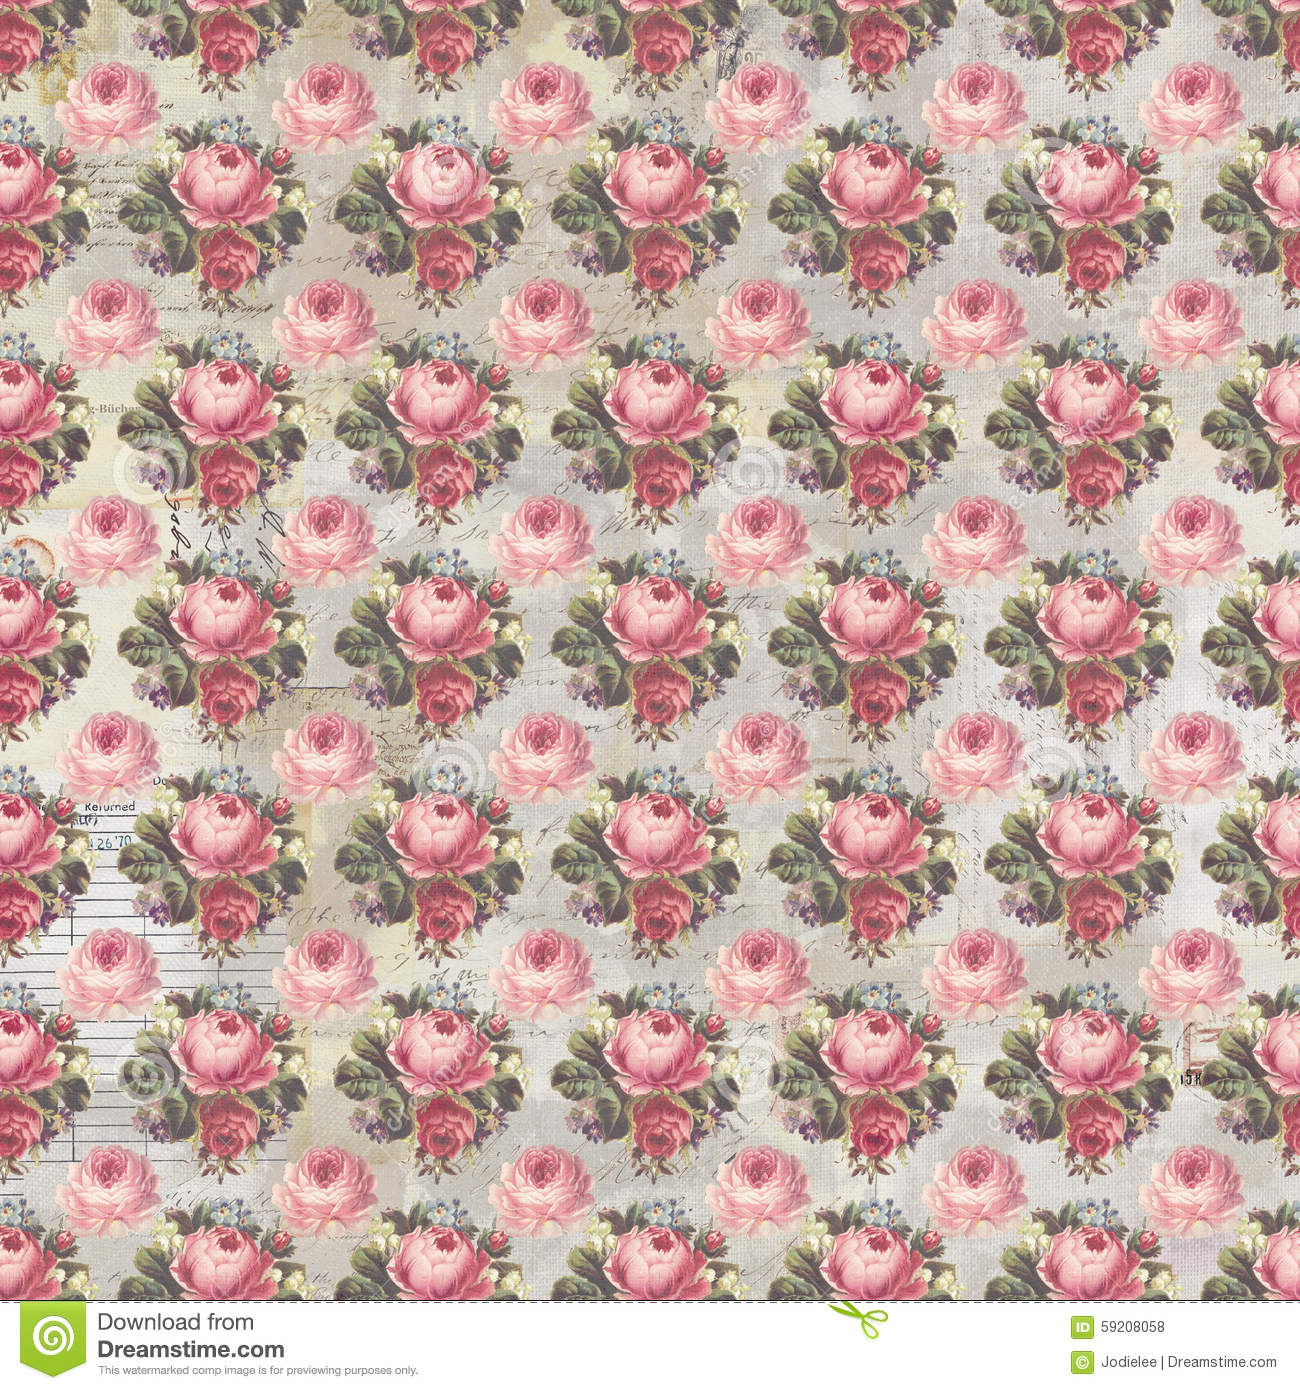 Antique pink and red shabby chic rose repeat pattern wallpaper